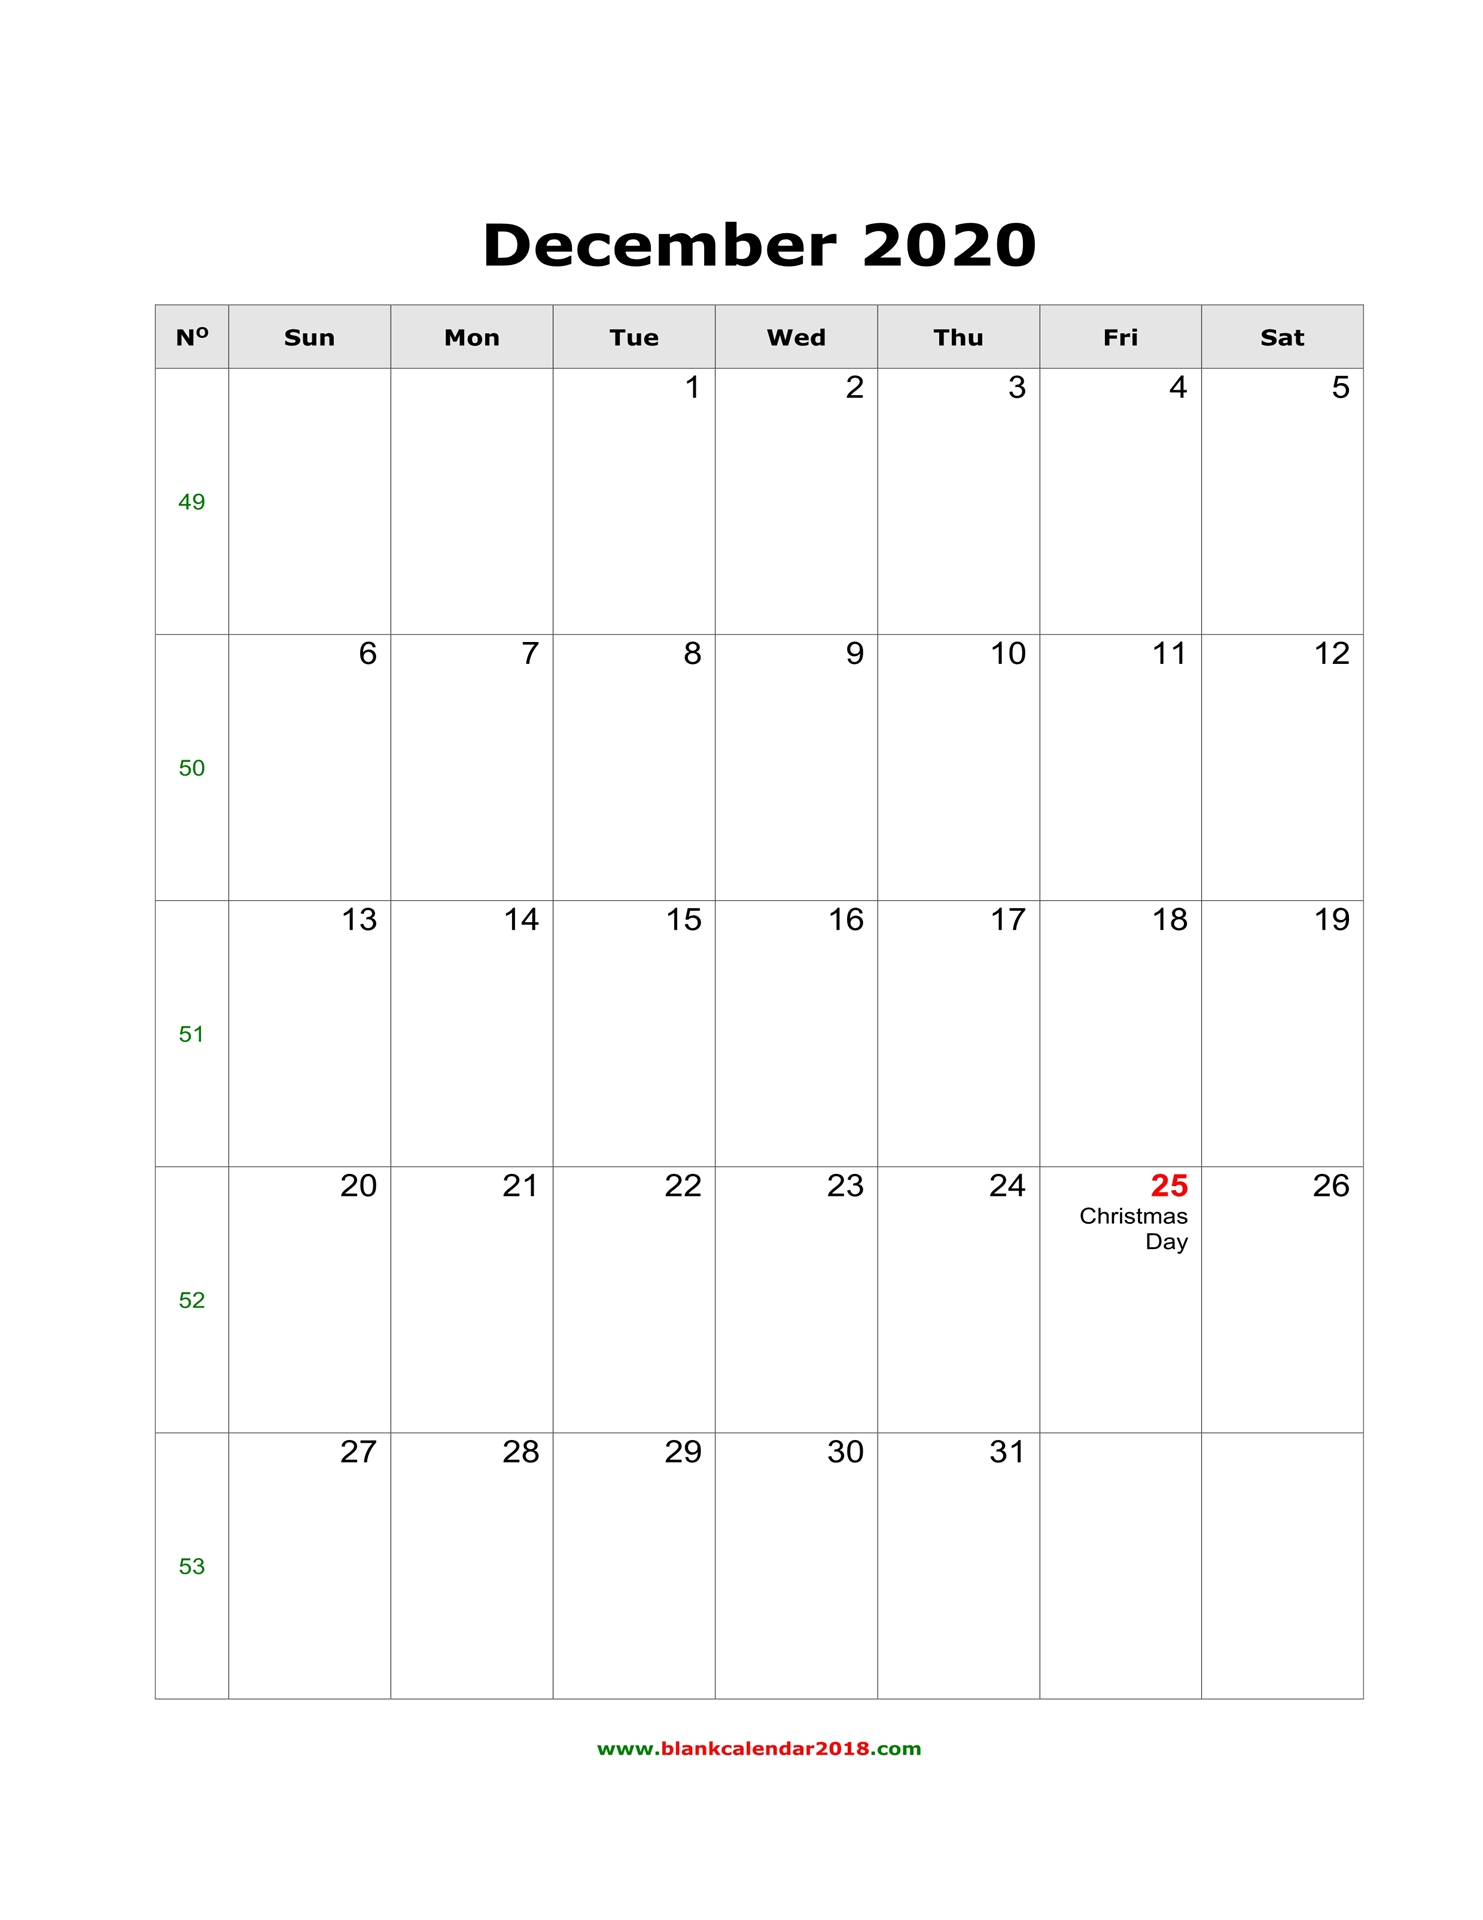 Blank Calendar For December 2020 within 3 Week Blank Calendar